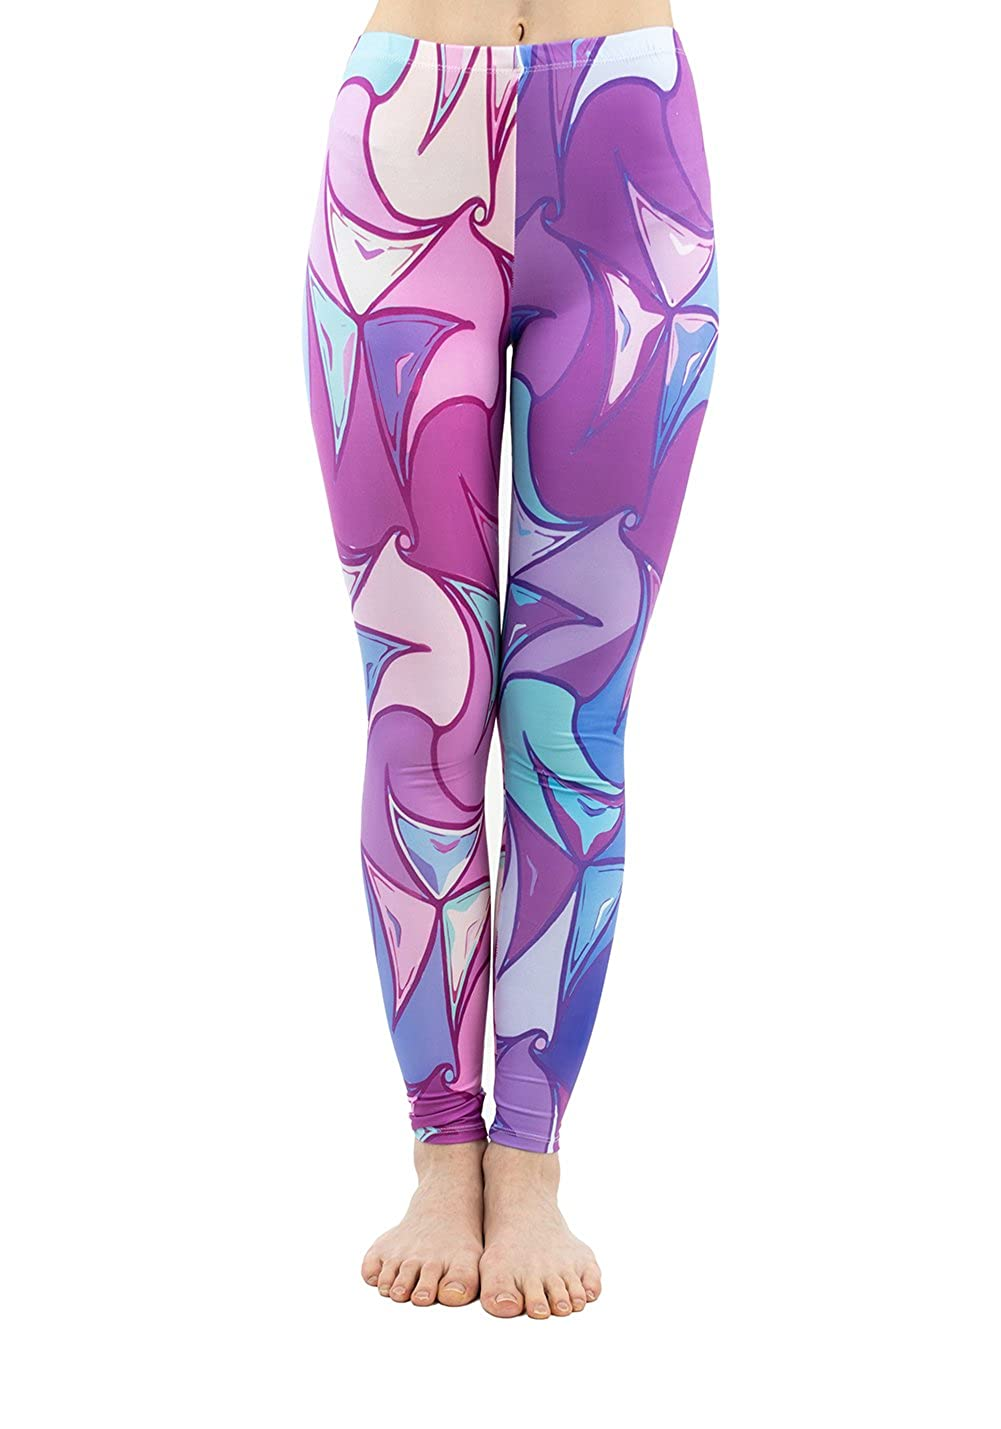 2d36edd5f0a6a FULL LENGTH LEGGINGS FOR EVERY HEIGHT - No matter how short or tall you  are, PINK PLOT Yoga Pants go from XS to L (Size 0-12))with its super  stretchy fabric ...